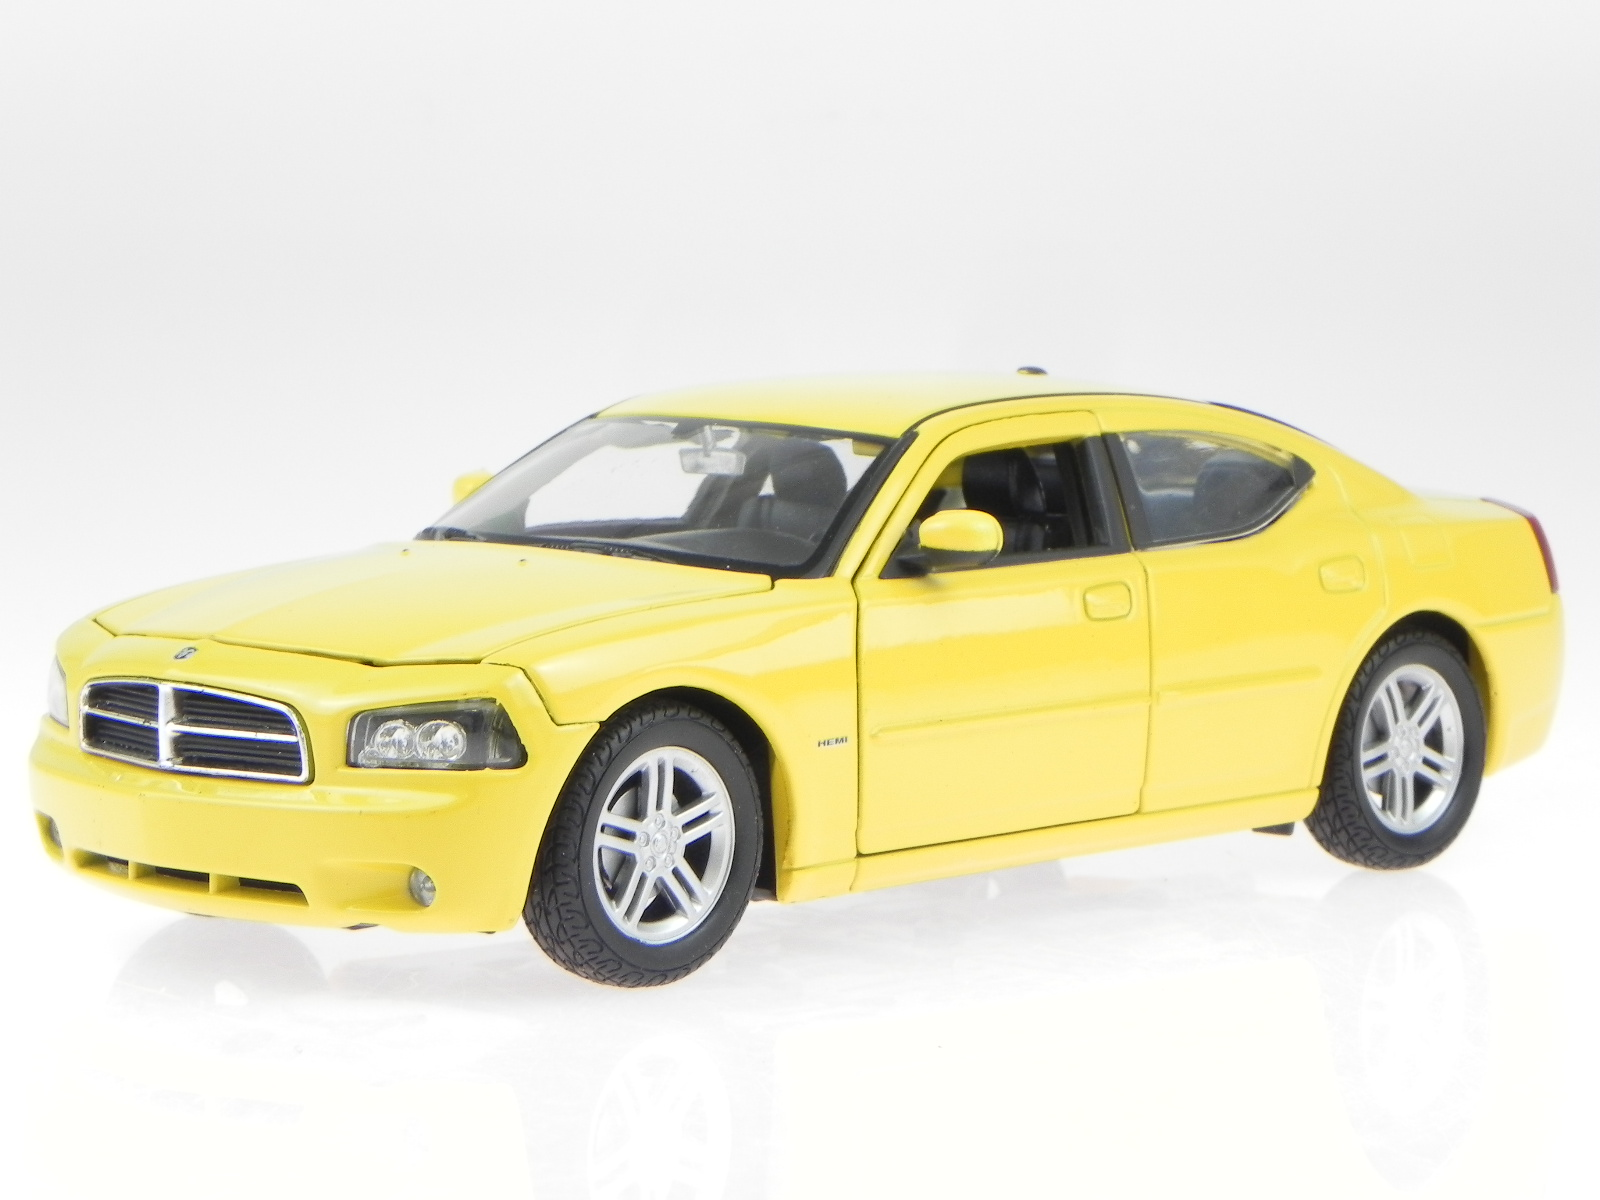 dodge charger r t yellow modelcar 22476 welly 1 24. Black Bedroom Furniture Sets. Home Design Ideas